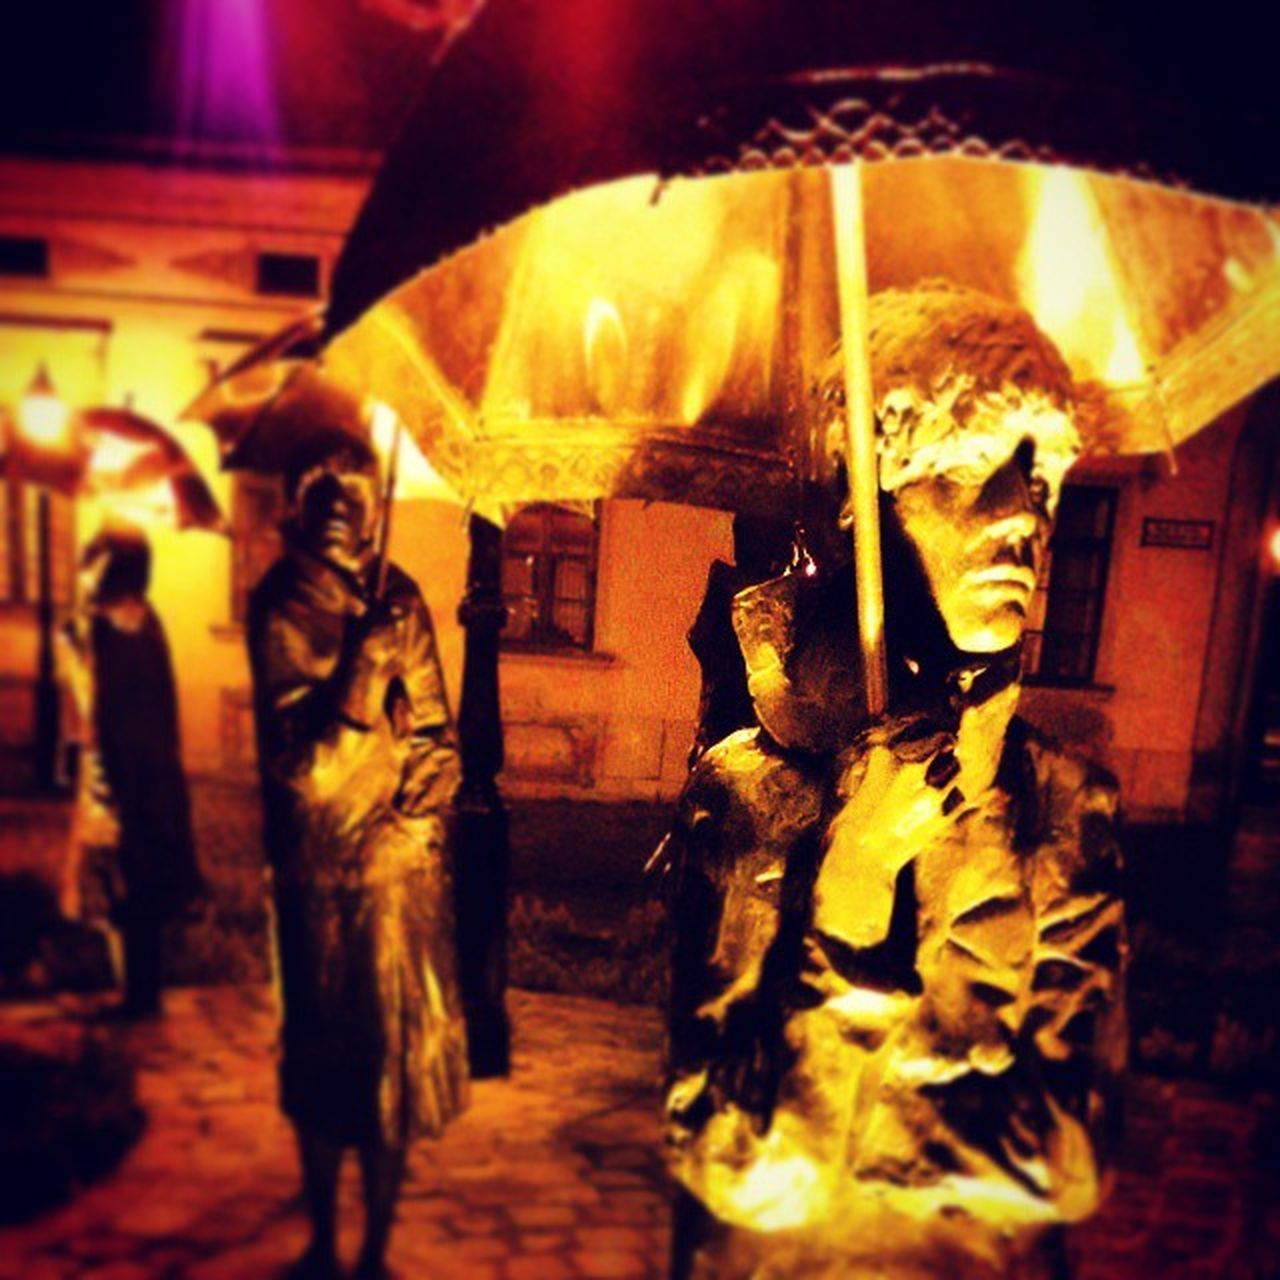 You can stay under my umbrella Statue Umbrella Obuda óbudacity Budapest Rihanna Esernyőscsávók Mik Urban Art Jamesdeanintherain